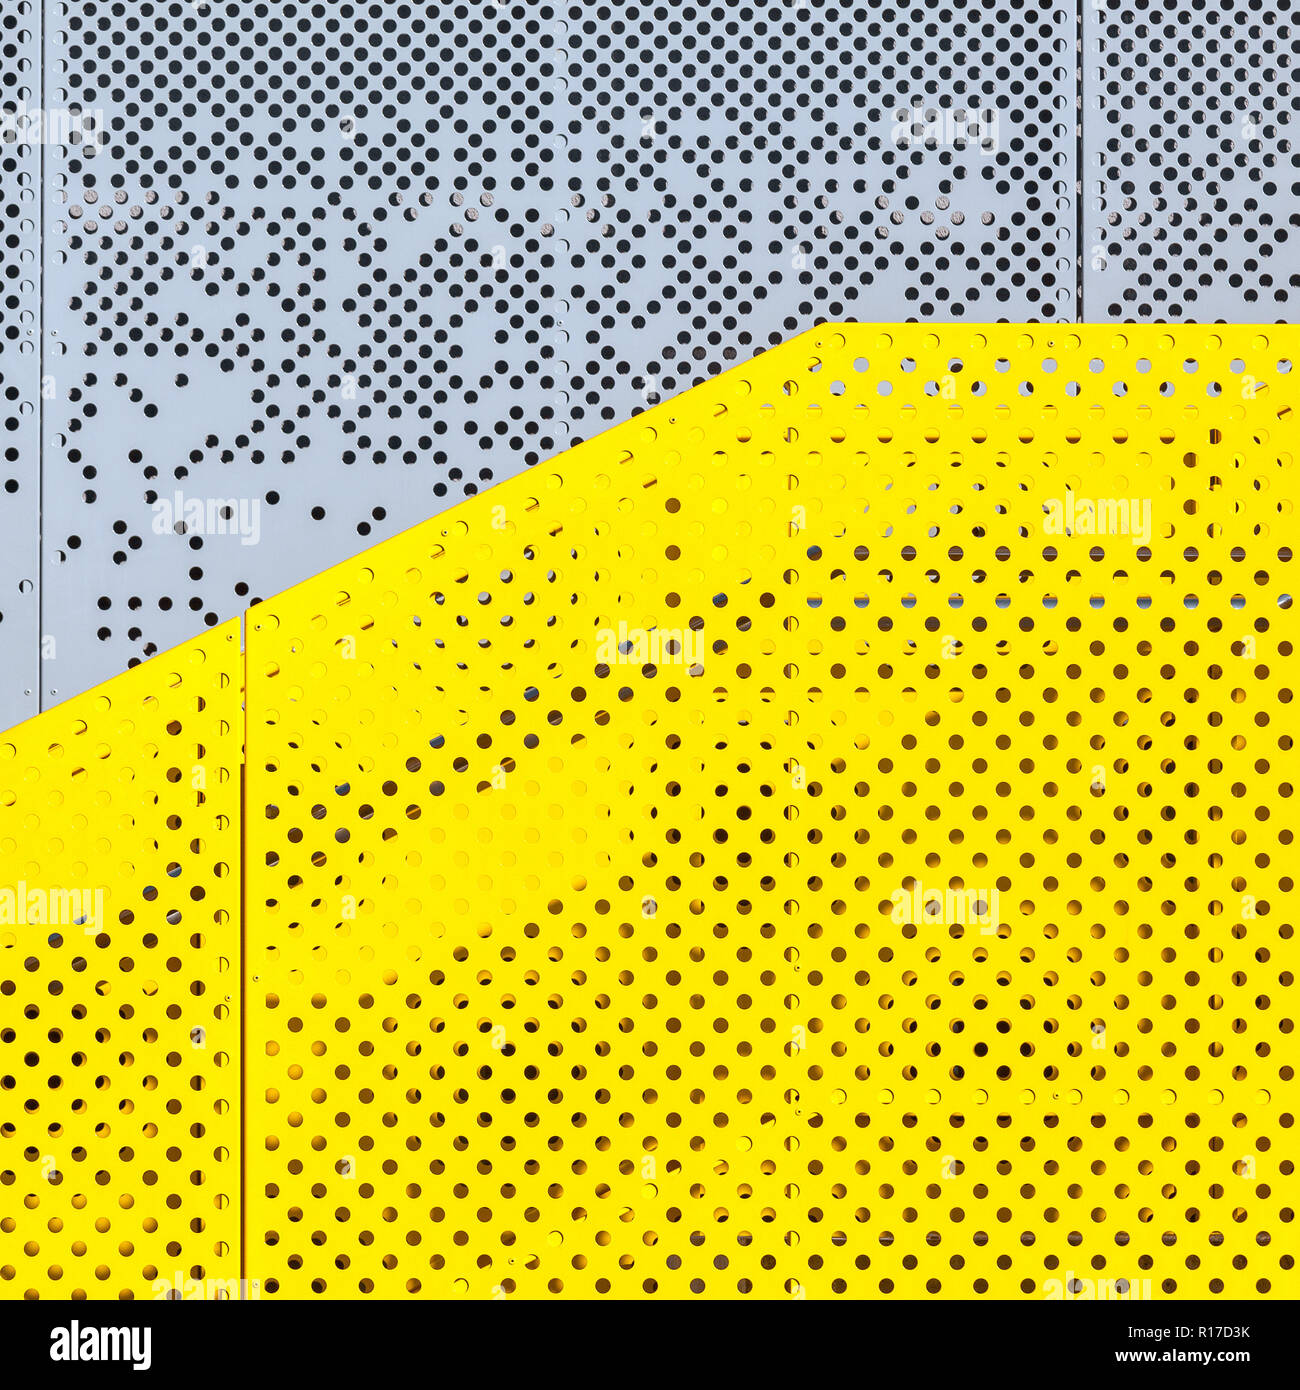 Grey and yellow perforated industrial metal background, abstract dotted texture - Stock Image